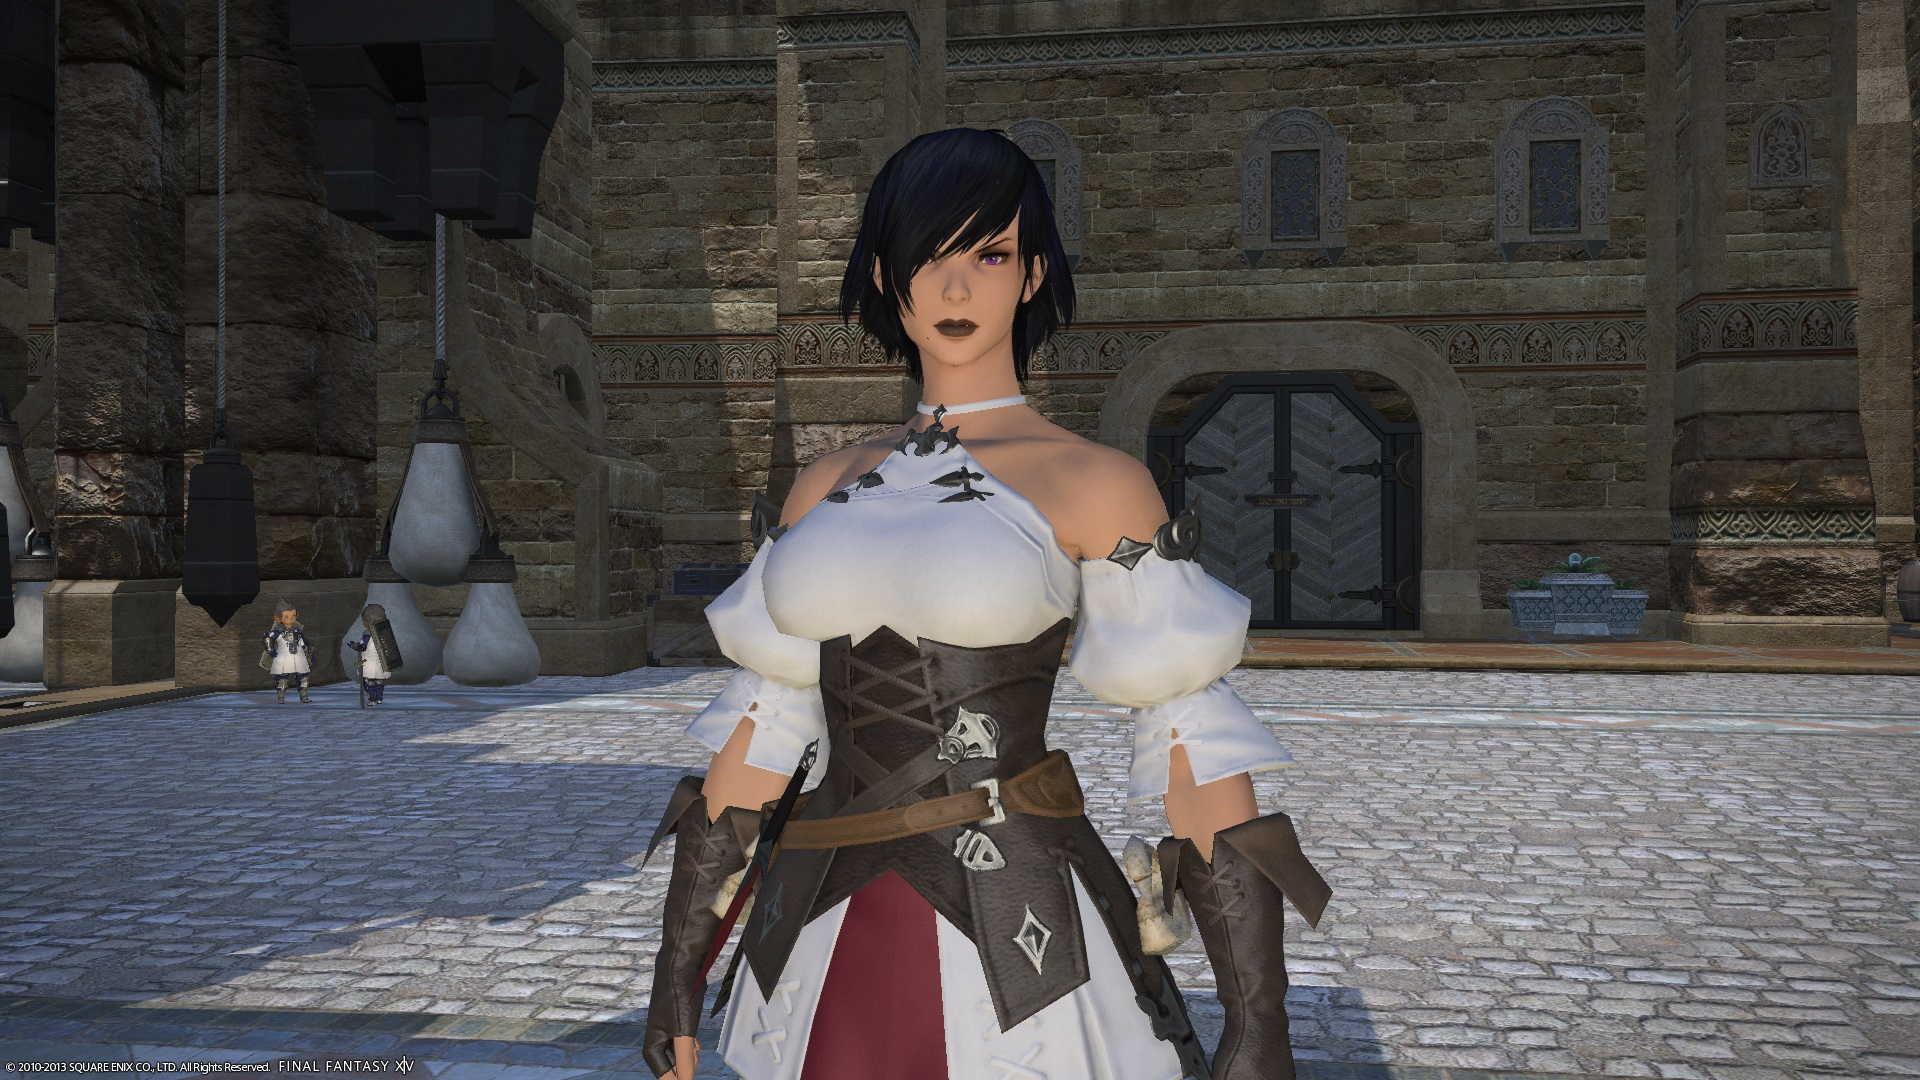 odesseiron ffxiv limsa through tonight well screenshots lifted phase beta cute fantastic awesome picture this comment cheesecake contest wanted just